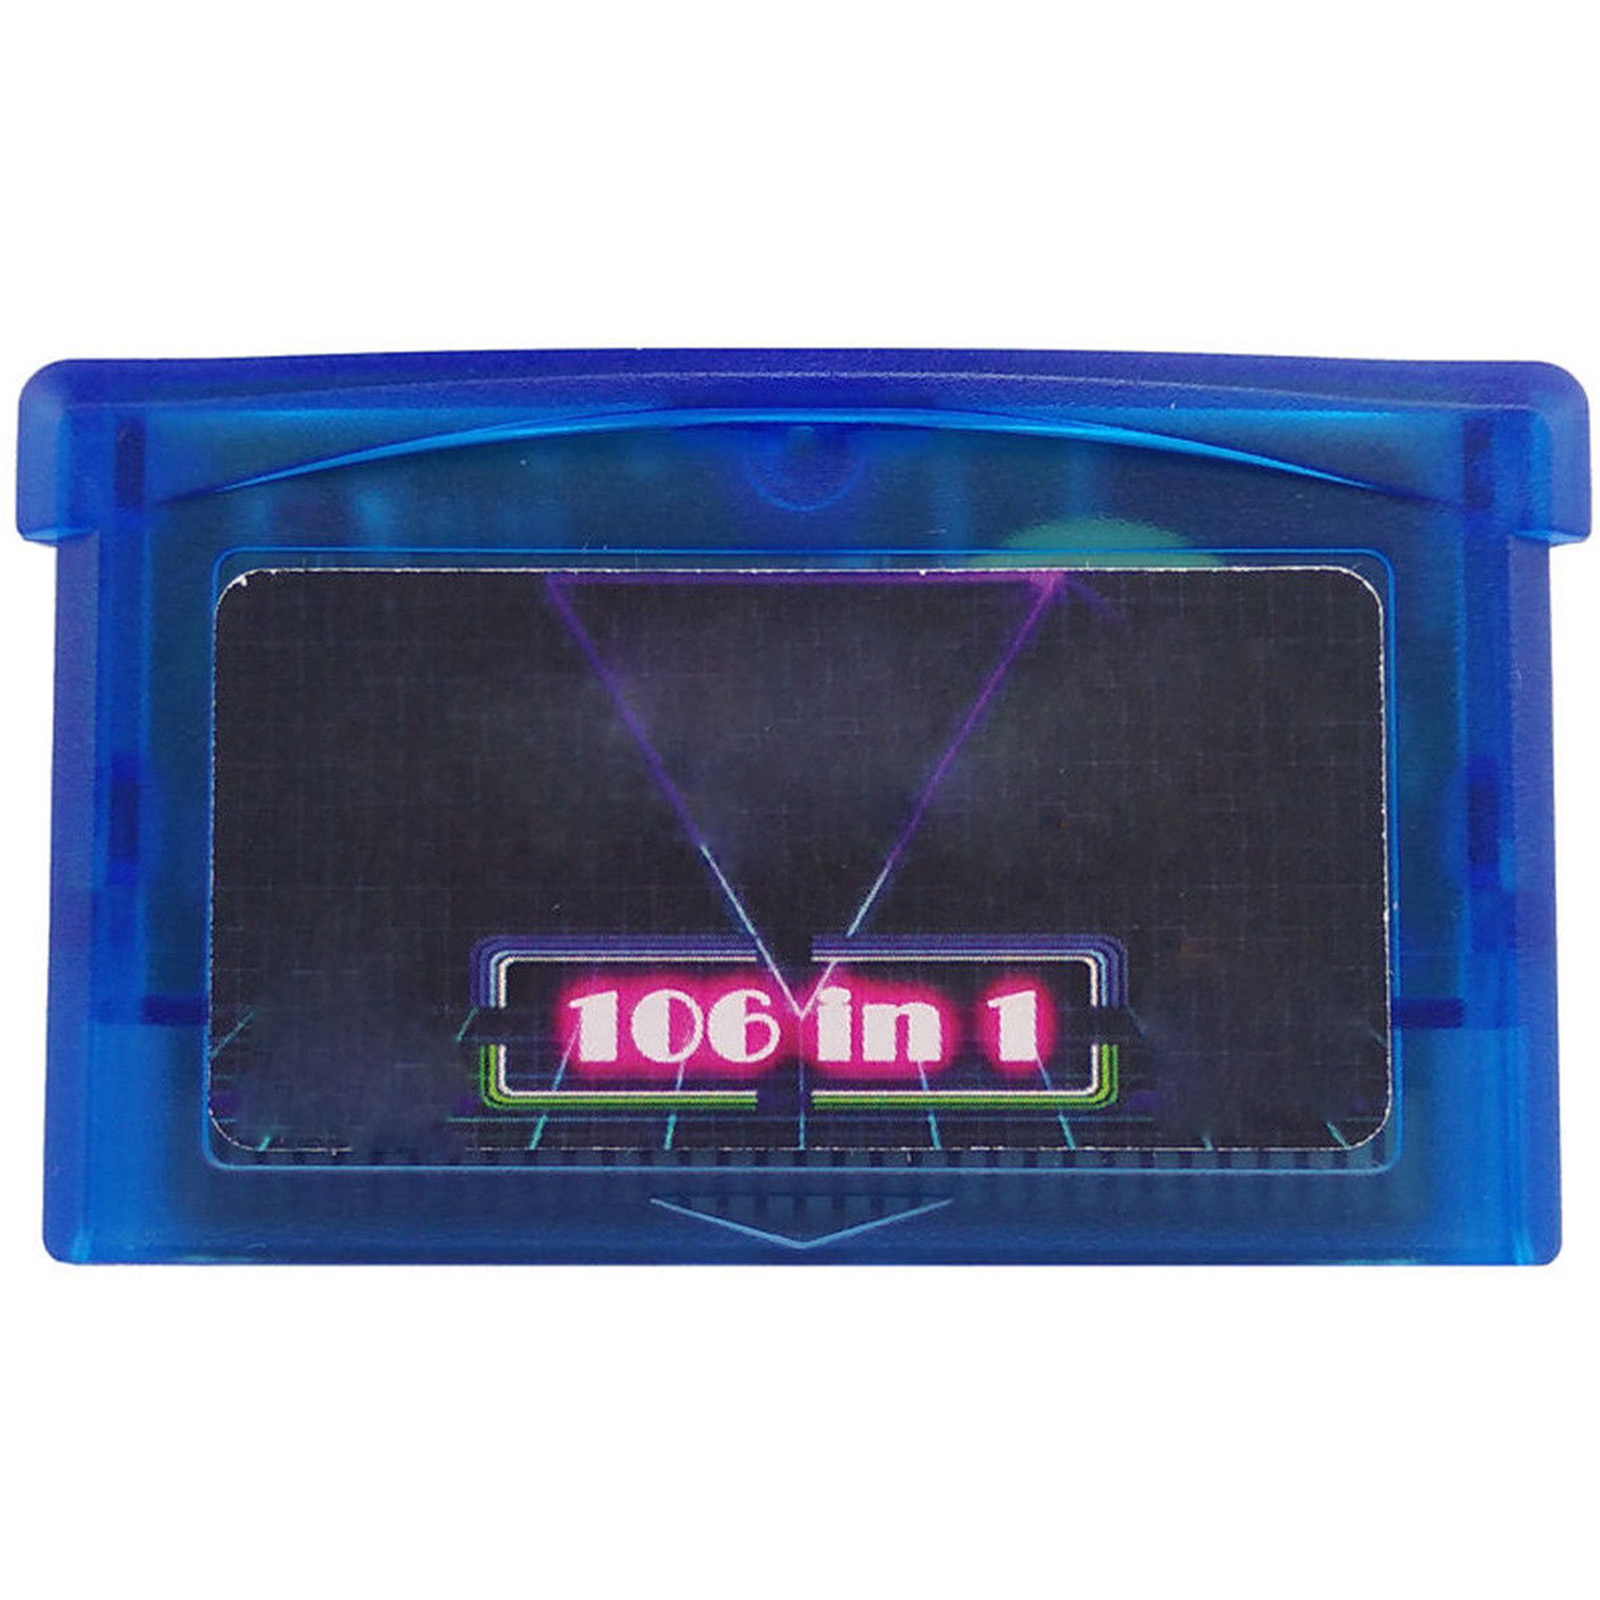 For GBA SMS 106 in 1 Game card For Sega Master System for Game Boy Advance SP NDS Multicart Games Accessories image